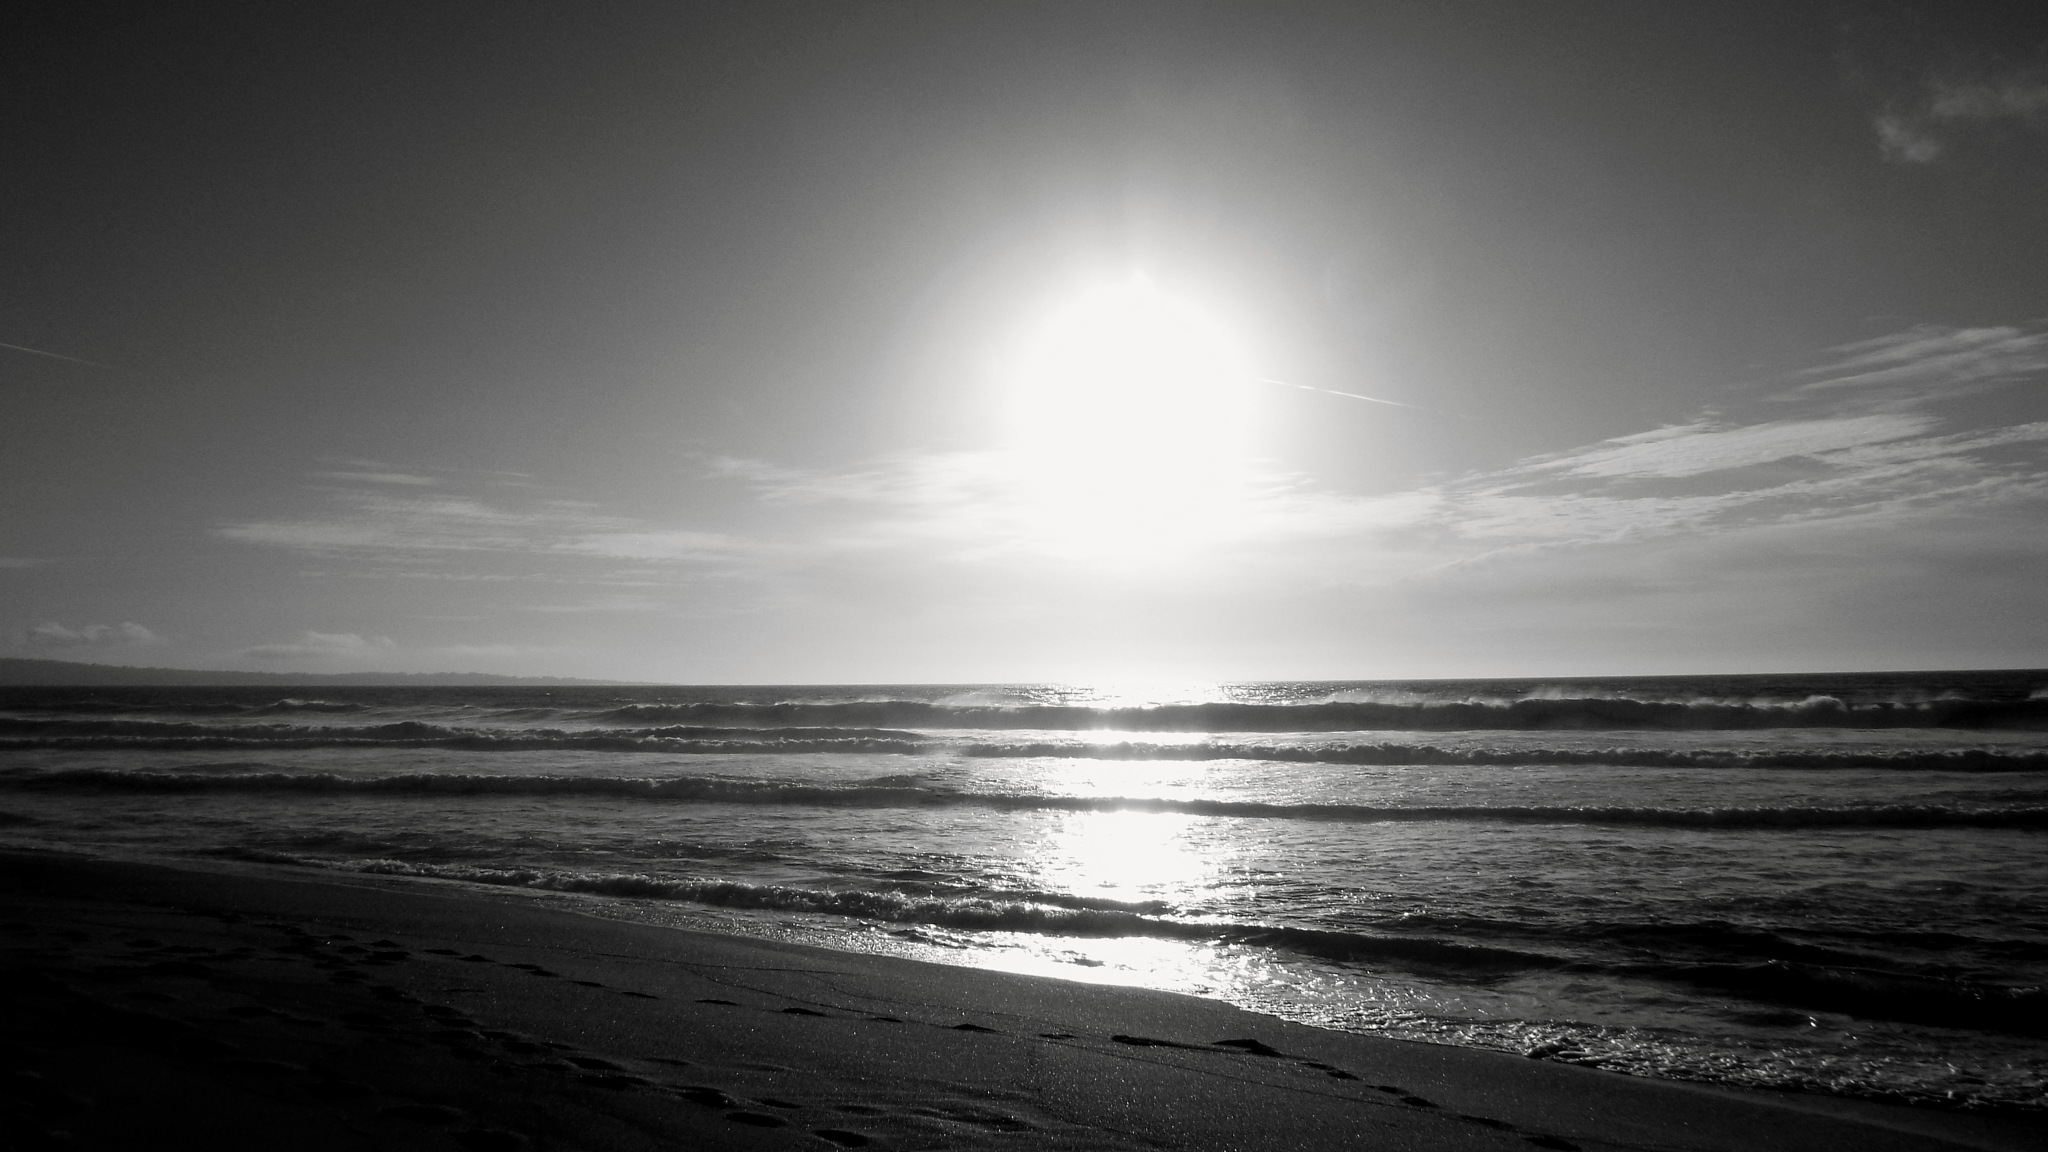 SUNSET AT PACIFIC OCEAN, B&W, FULL SCREEN by Akin Saner